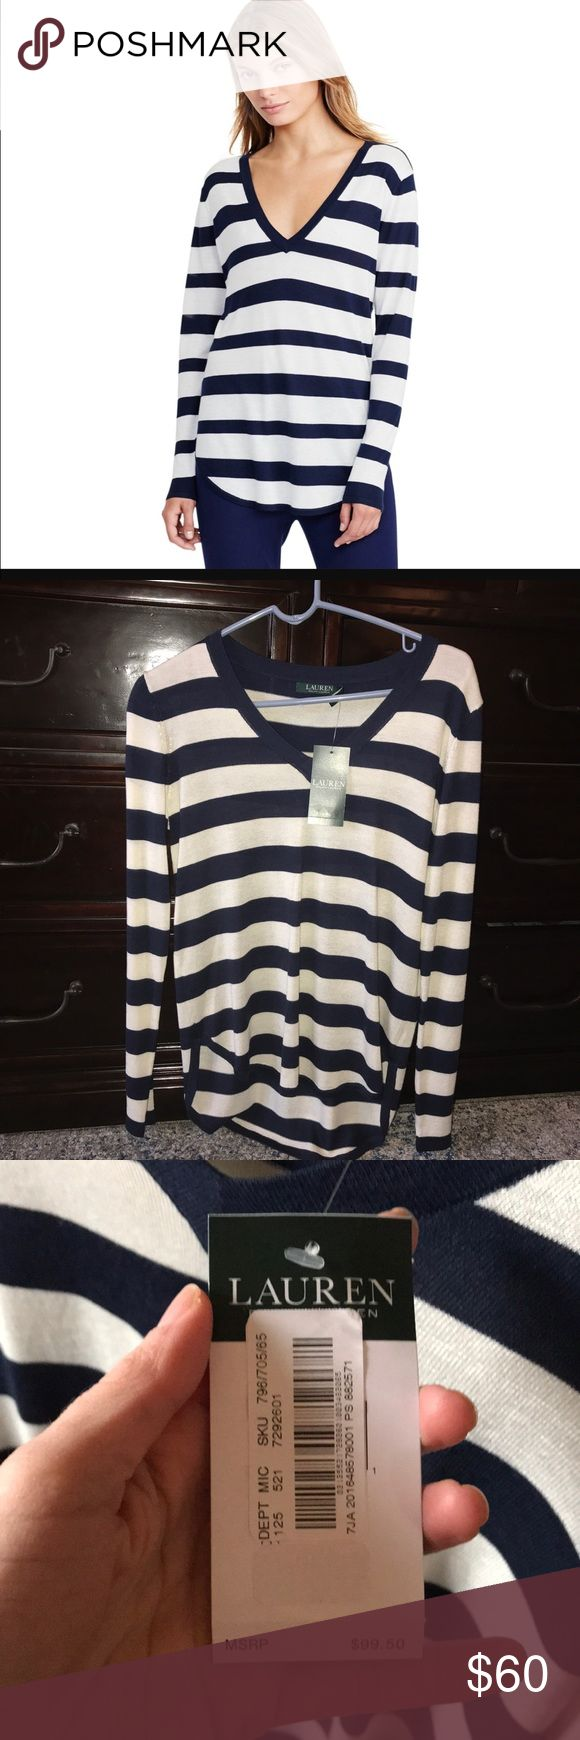 """LAUREN Ralph Lauren striped sweater Knit from a fine-gauge silk blend, Lauren Ralph Lauren's season-spanning sweater's effortlessly chic drape is enhanced by its asymmetrical hem. Relaxed fit. V-neckline. Curved hem falls lower at the back. Measures 25"""" shoulder to front hem. 18"""" under arm to under arm. Size Small Petite. Non smoker. Brand new with tags, no flaws. Lauren Ralph Lauren Sweaters V-Necks"""